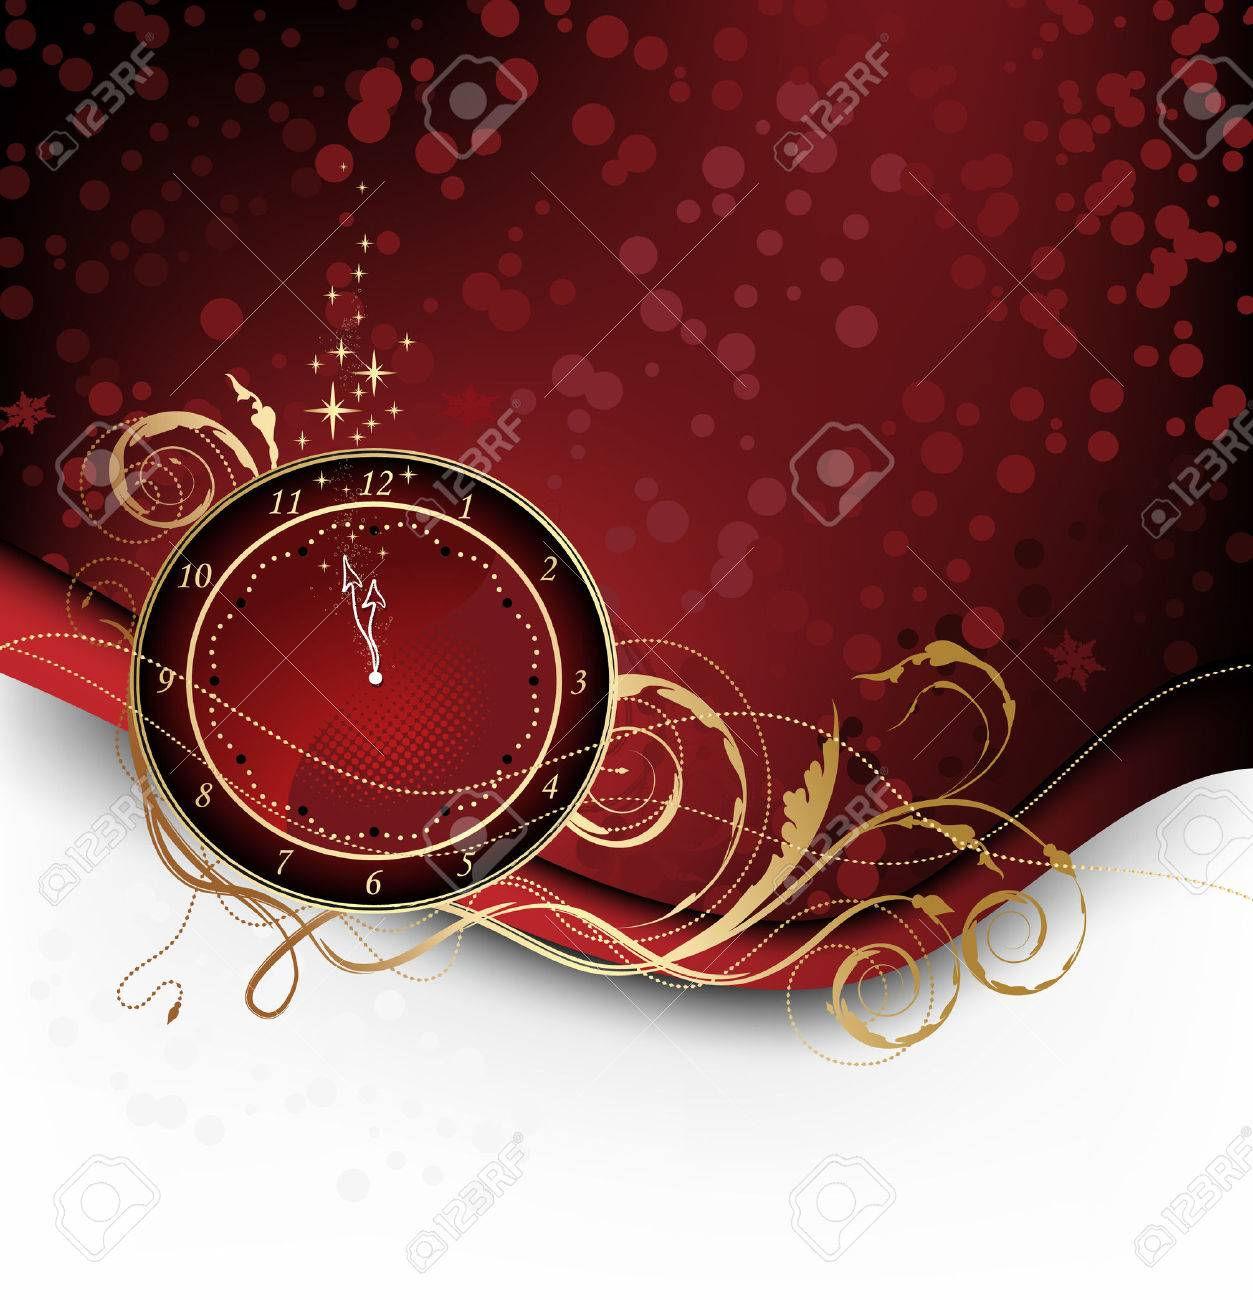 Red Christmas background with candy, stars and clock - 7678743